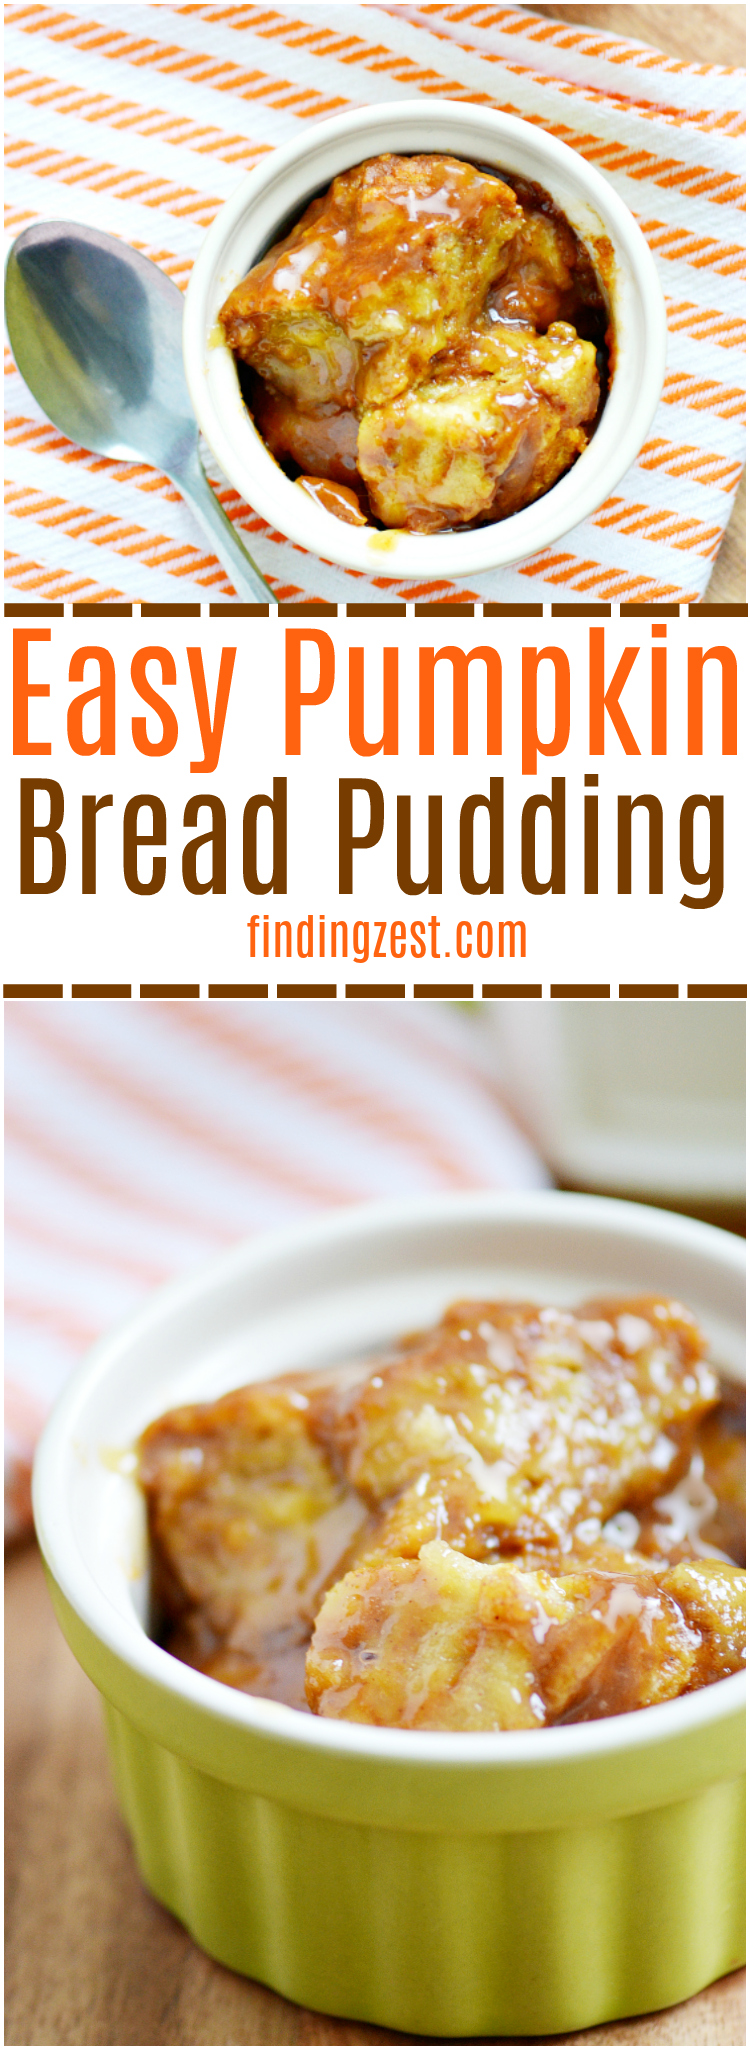 Try this easy pumpkin bread pudding recipe and discover how simple it is to make an amazing bread pudding with brown sugar sauce! Tastes great topped with vanilla ice cream or whipped cream. Try it for Thanksgiving dessert!